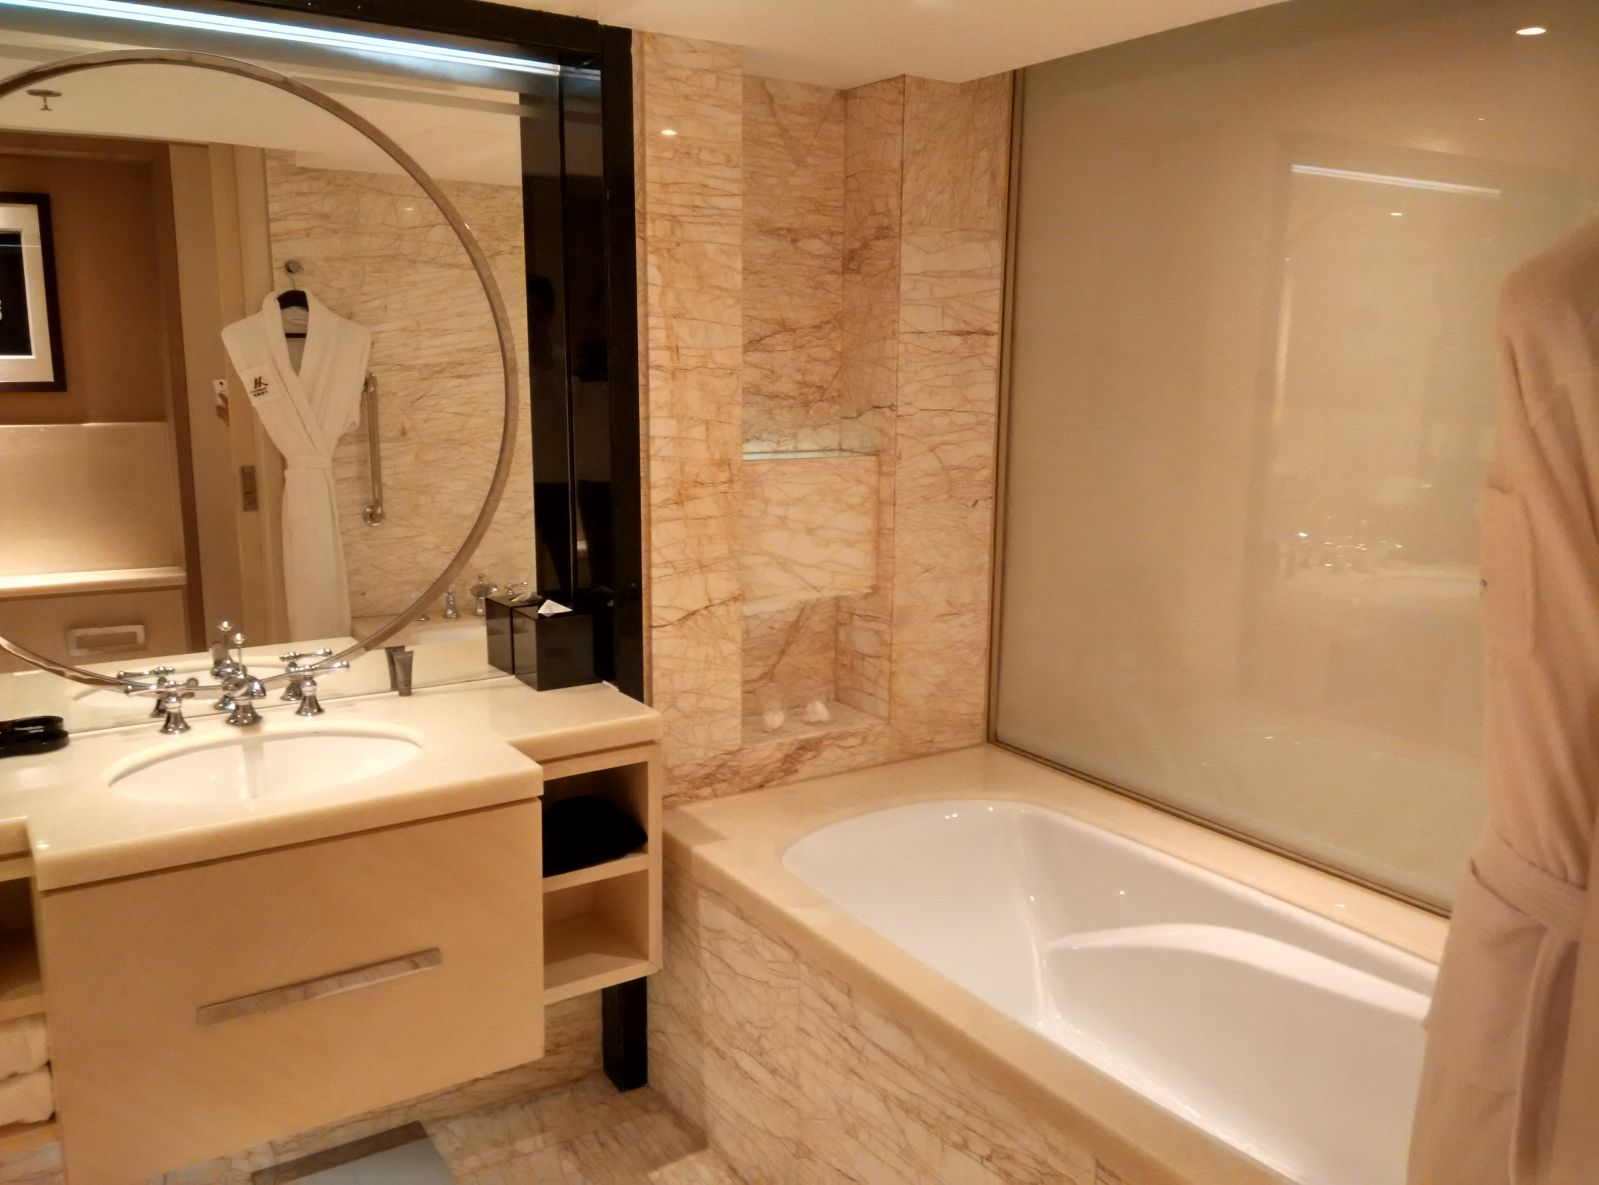 guangzhou-marriott-tianhe-bathroom